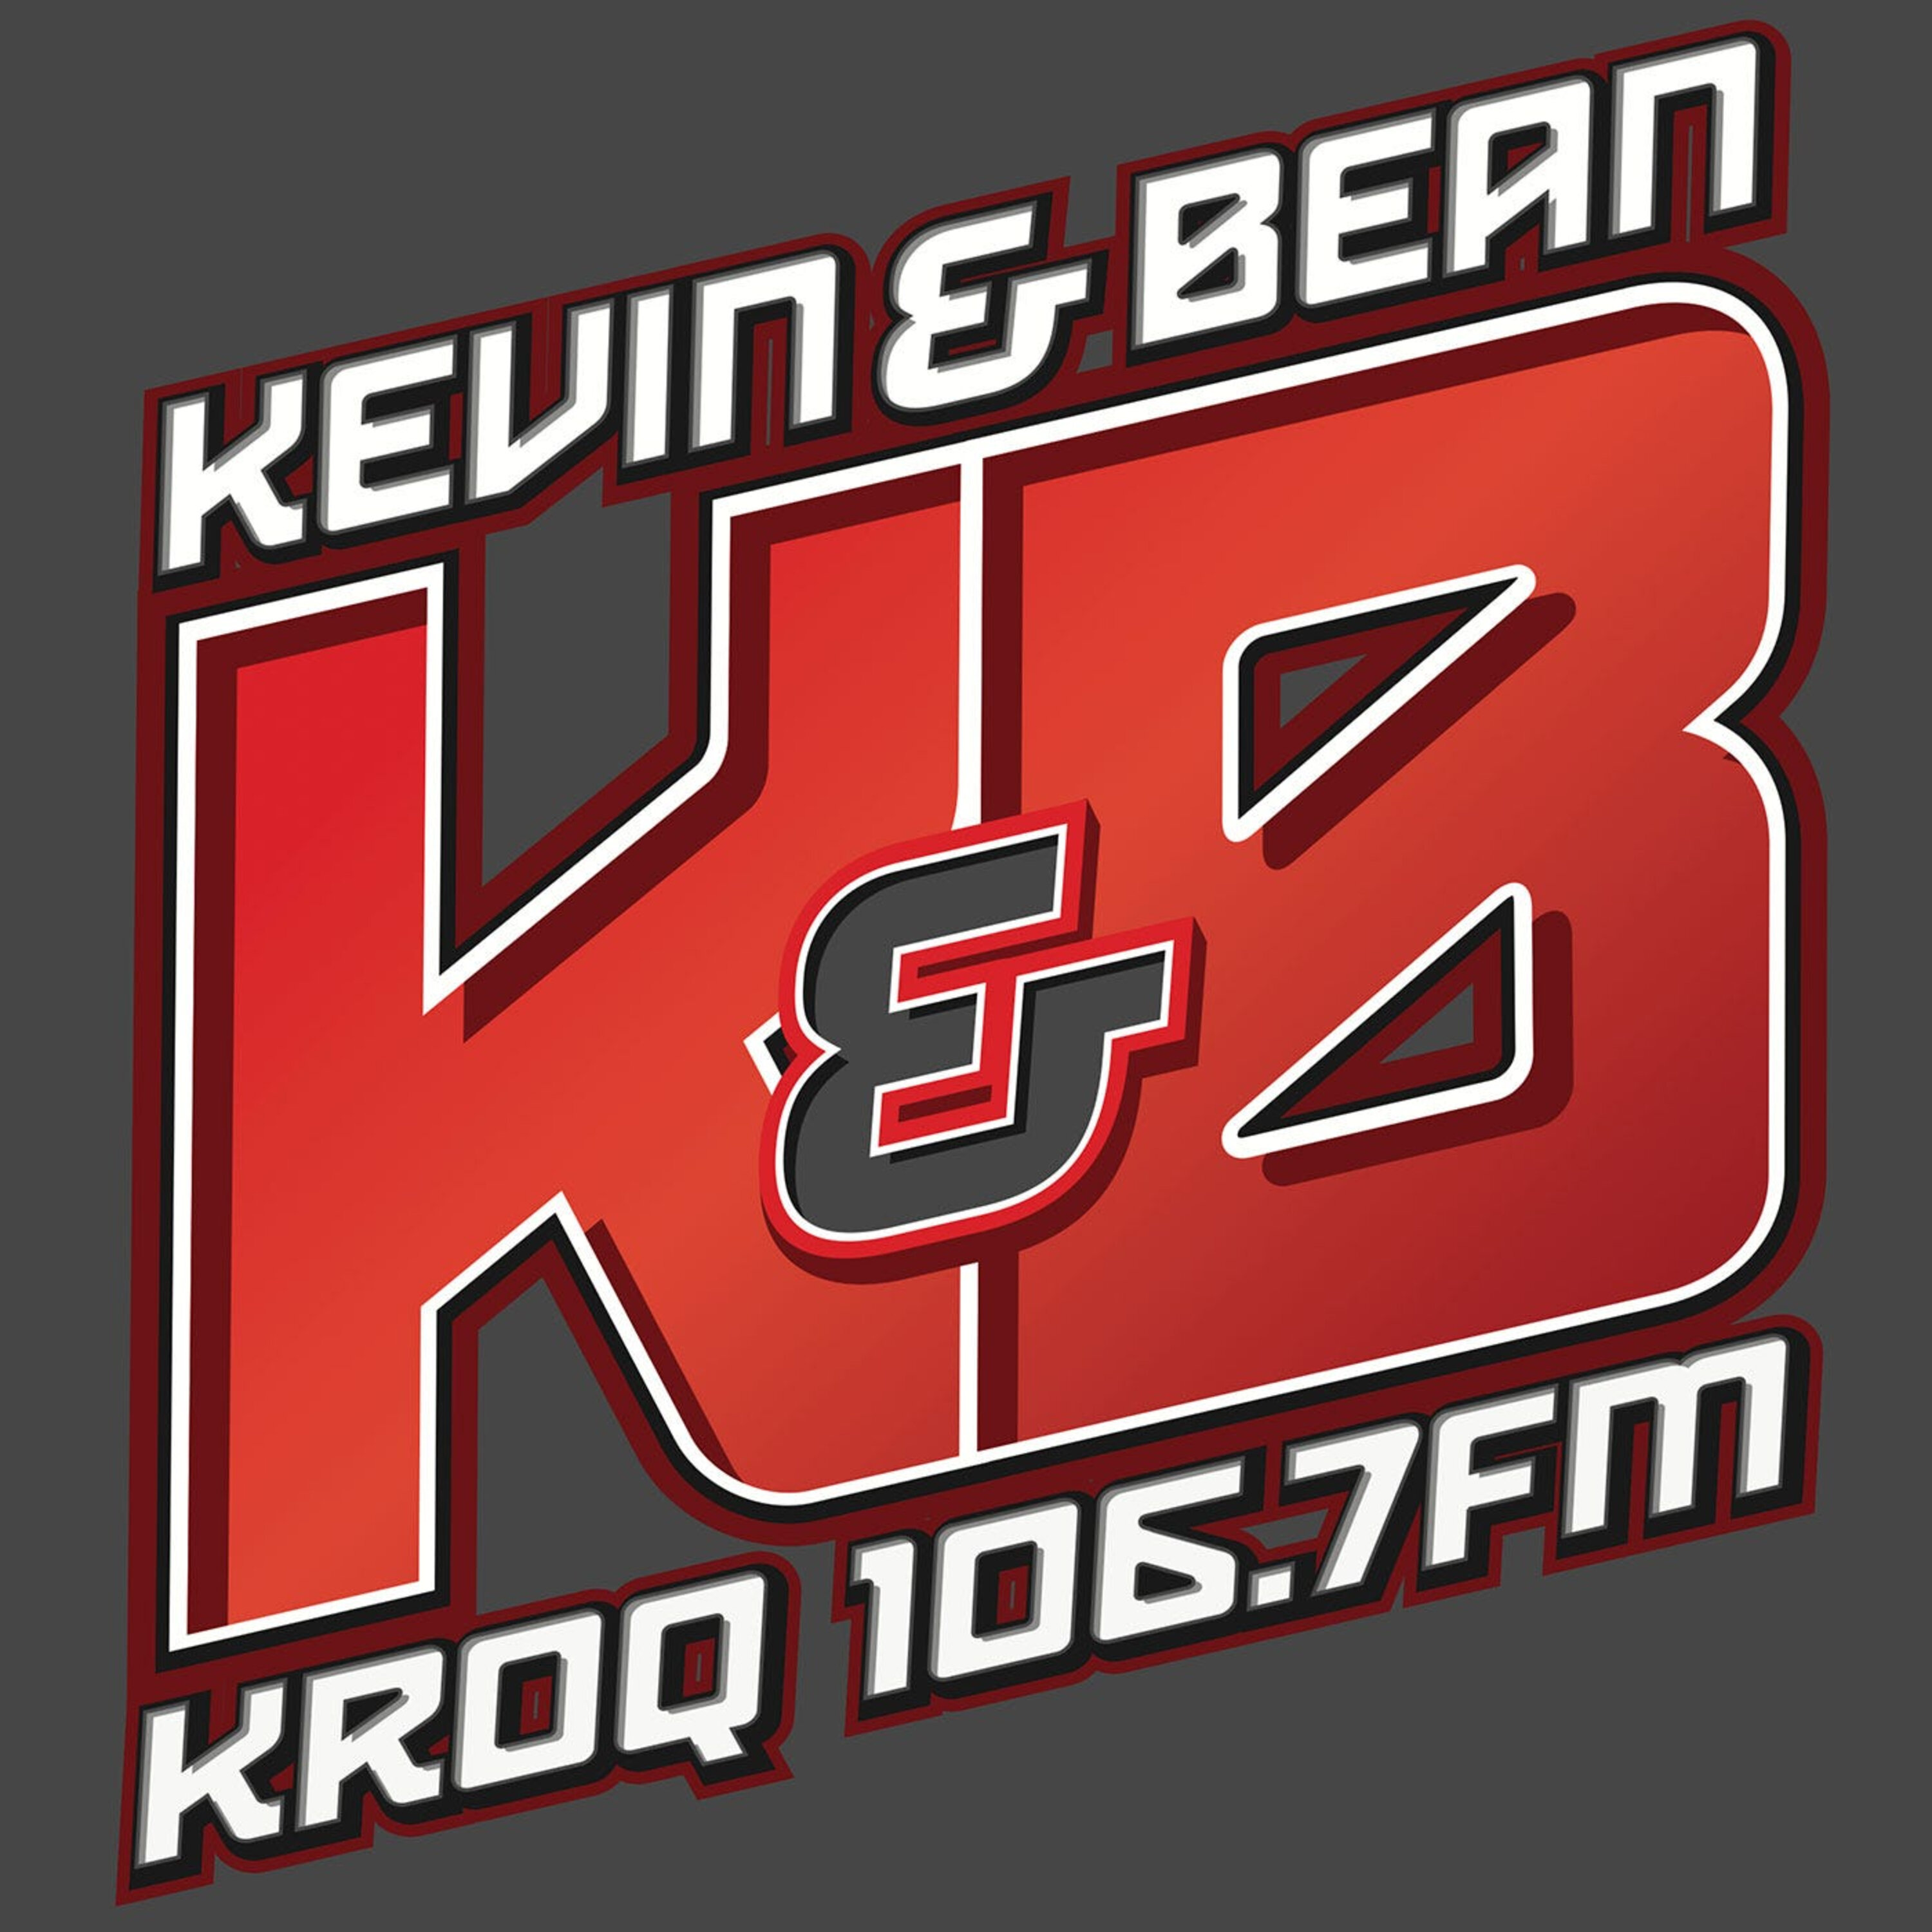 The Kevin & Bean Show on KROQ Logo